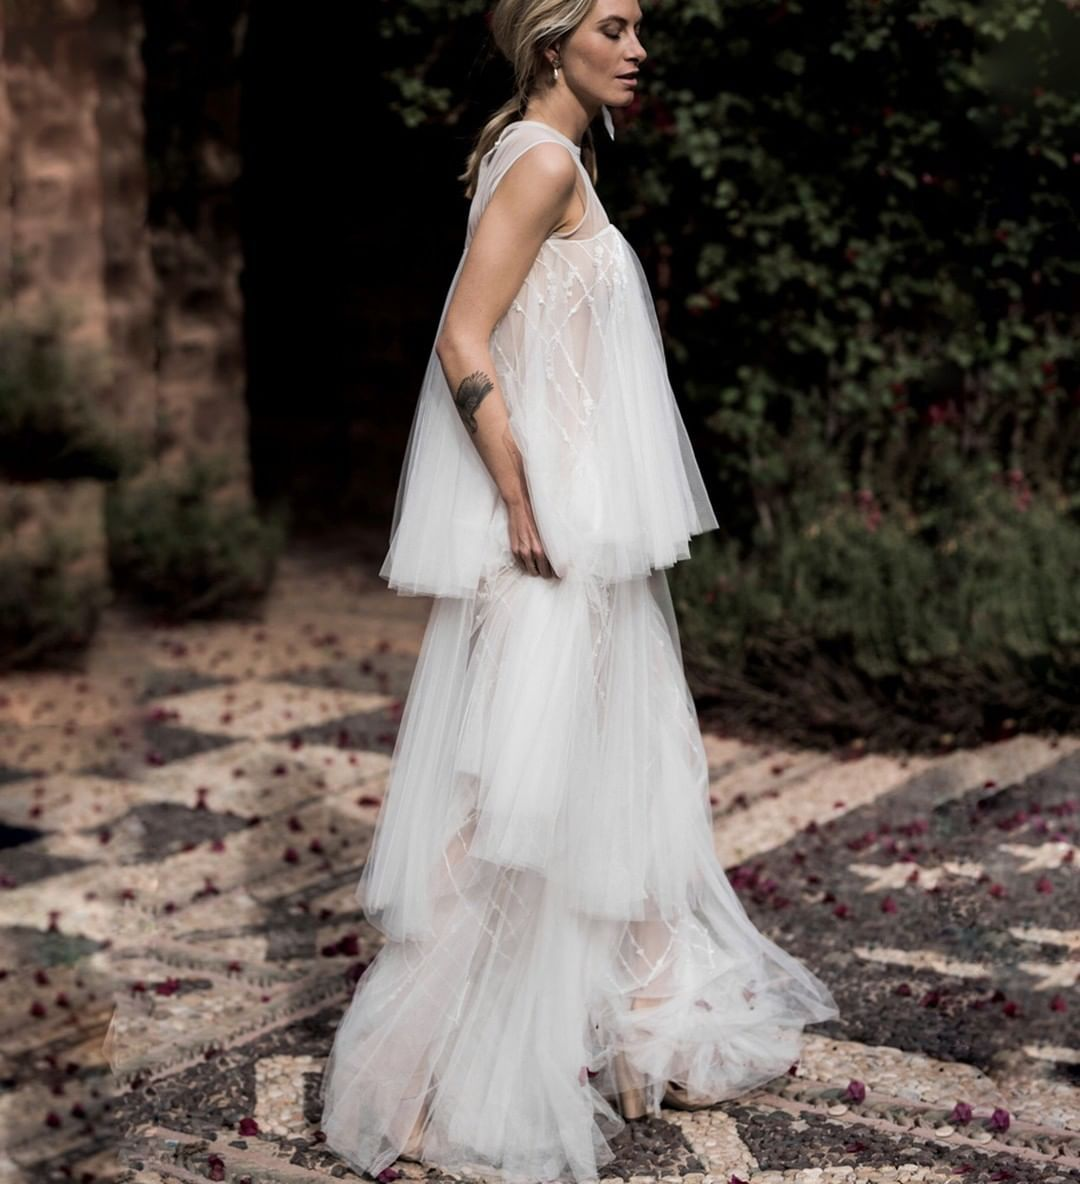 How Much Does A Wedding Dress Expenditure? How Much Is The